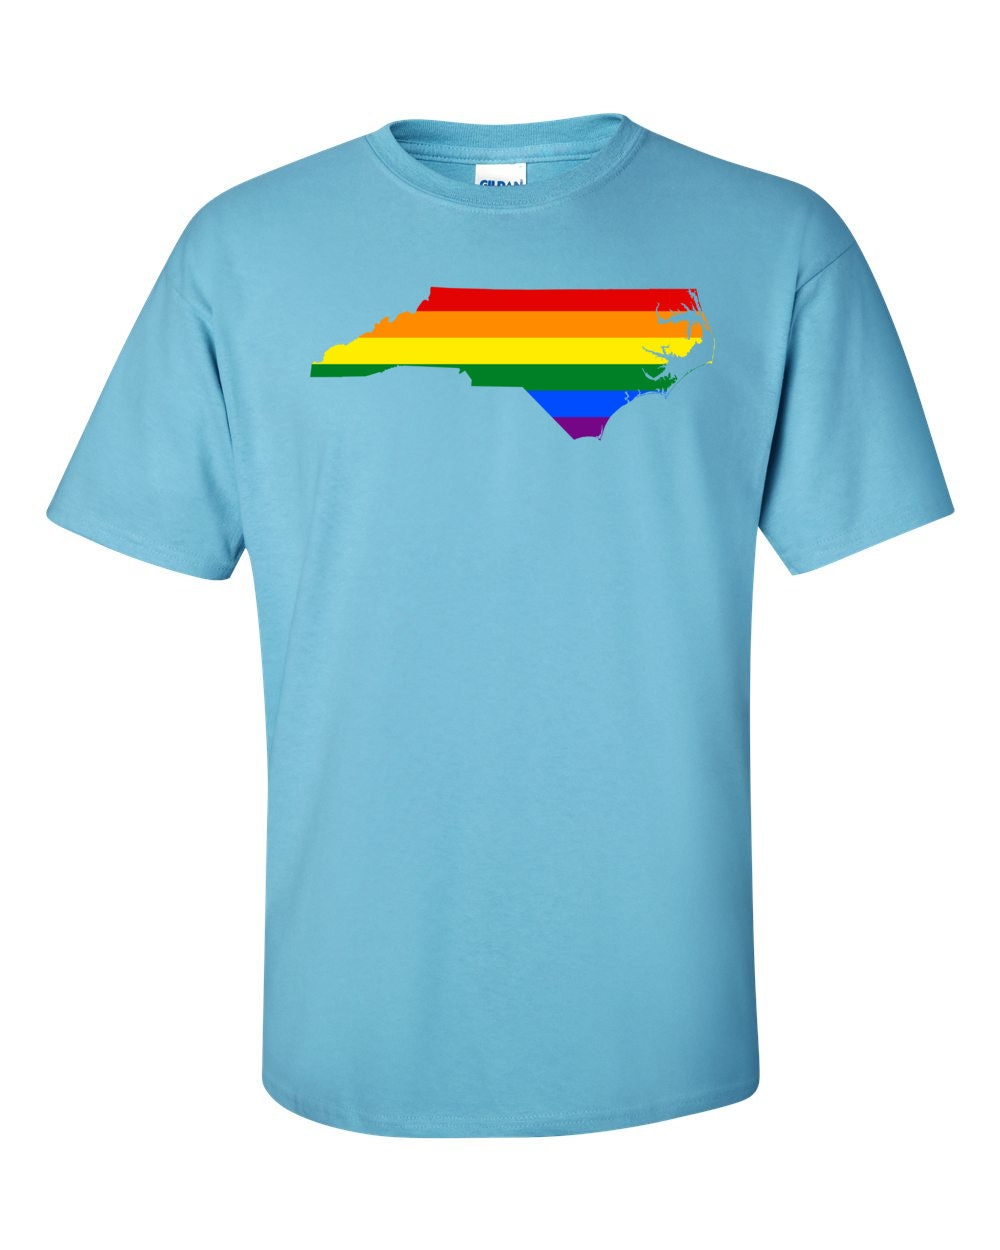 Gay Pride Shirt - Gay Pride in North Carolina - Gay Pride T-shirt